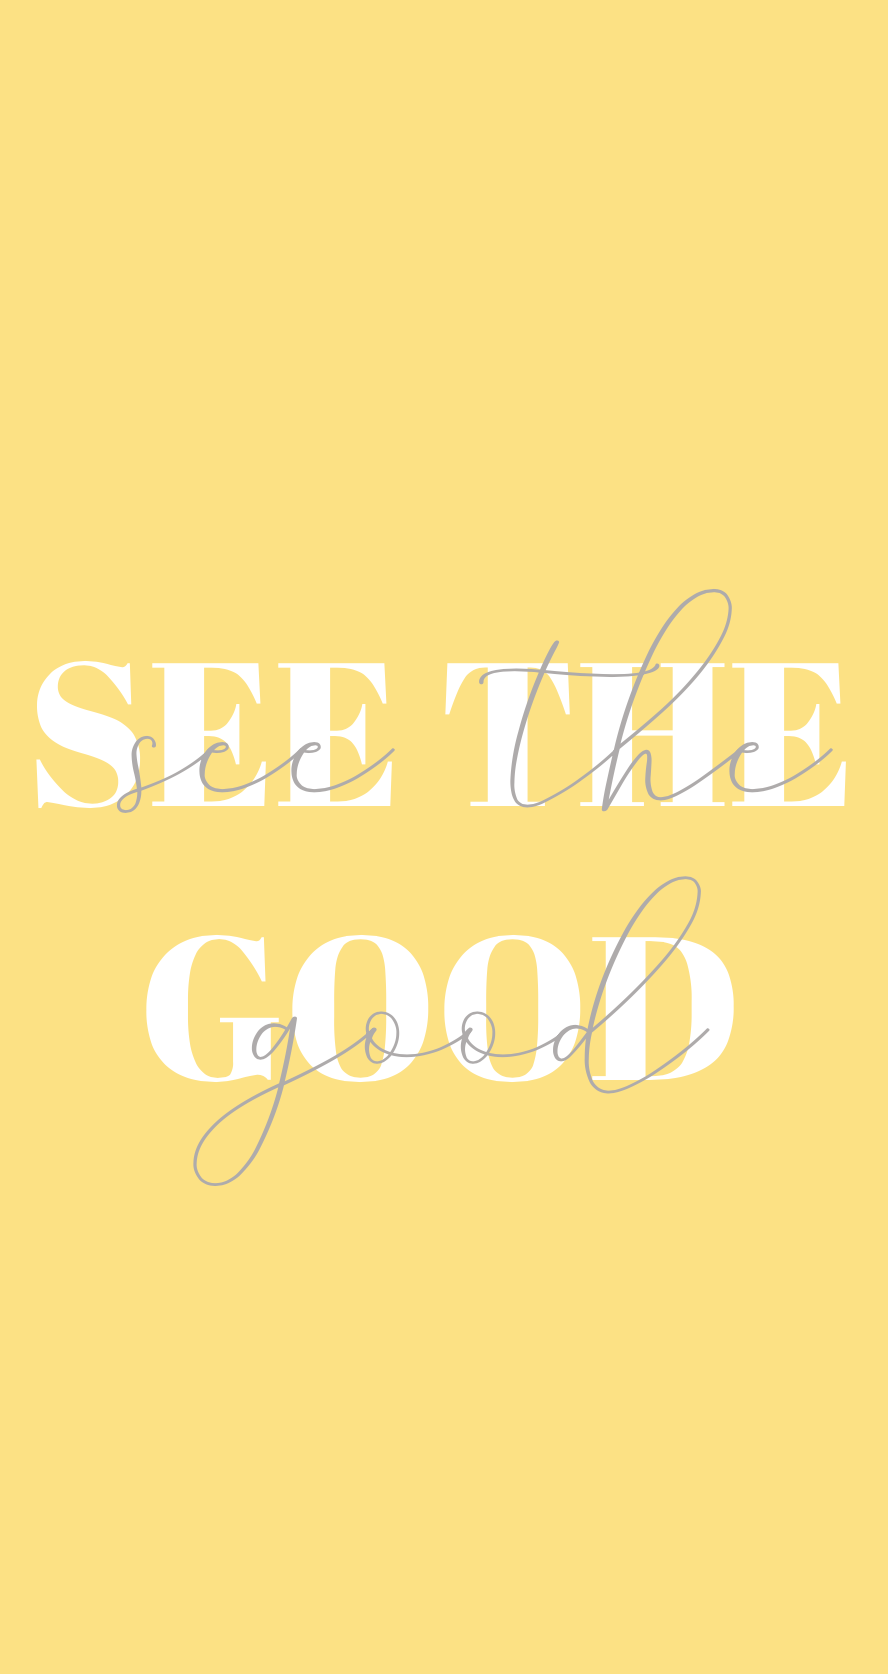 See The Good Yellow Quote Wallpaper Iphone Background Iphone Wallpaper Yellow Background Yellow Quotes Iphone Wallpaper Quotes Love Iphone Background Quote